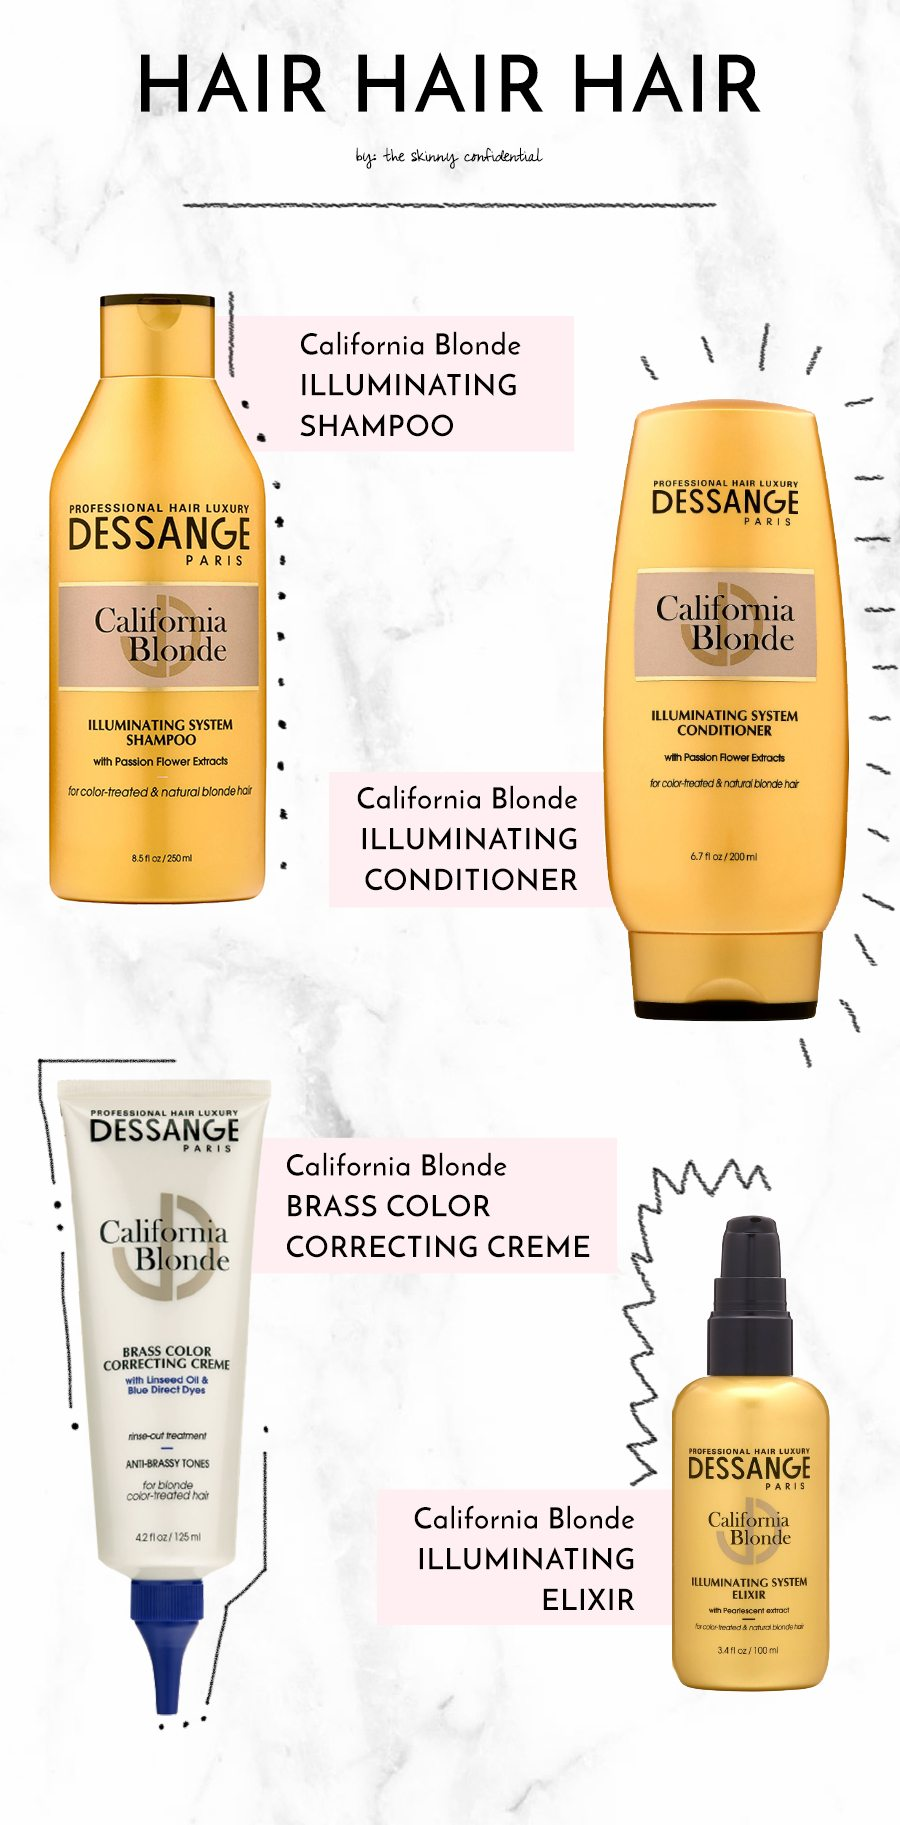 dessange collage | by the skinny confidential